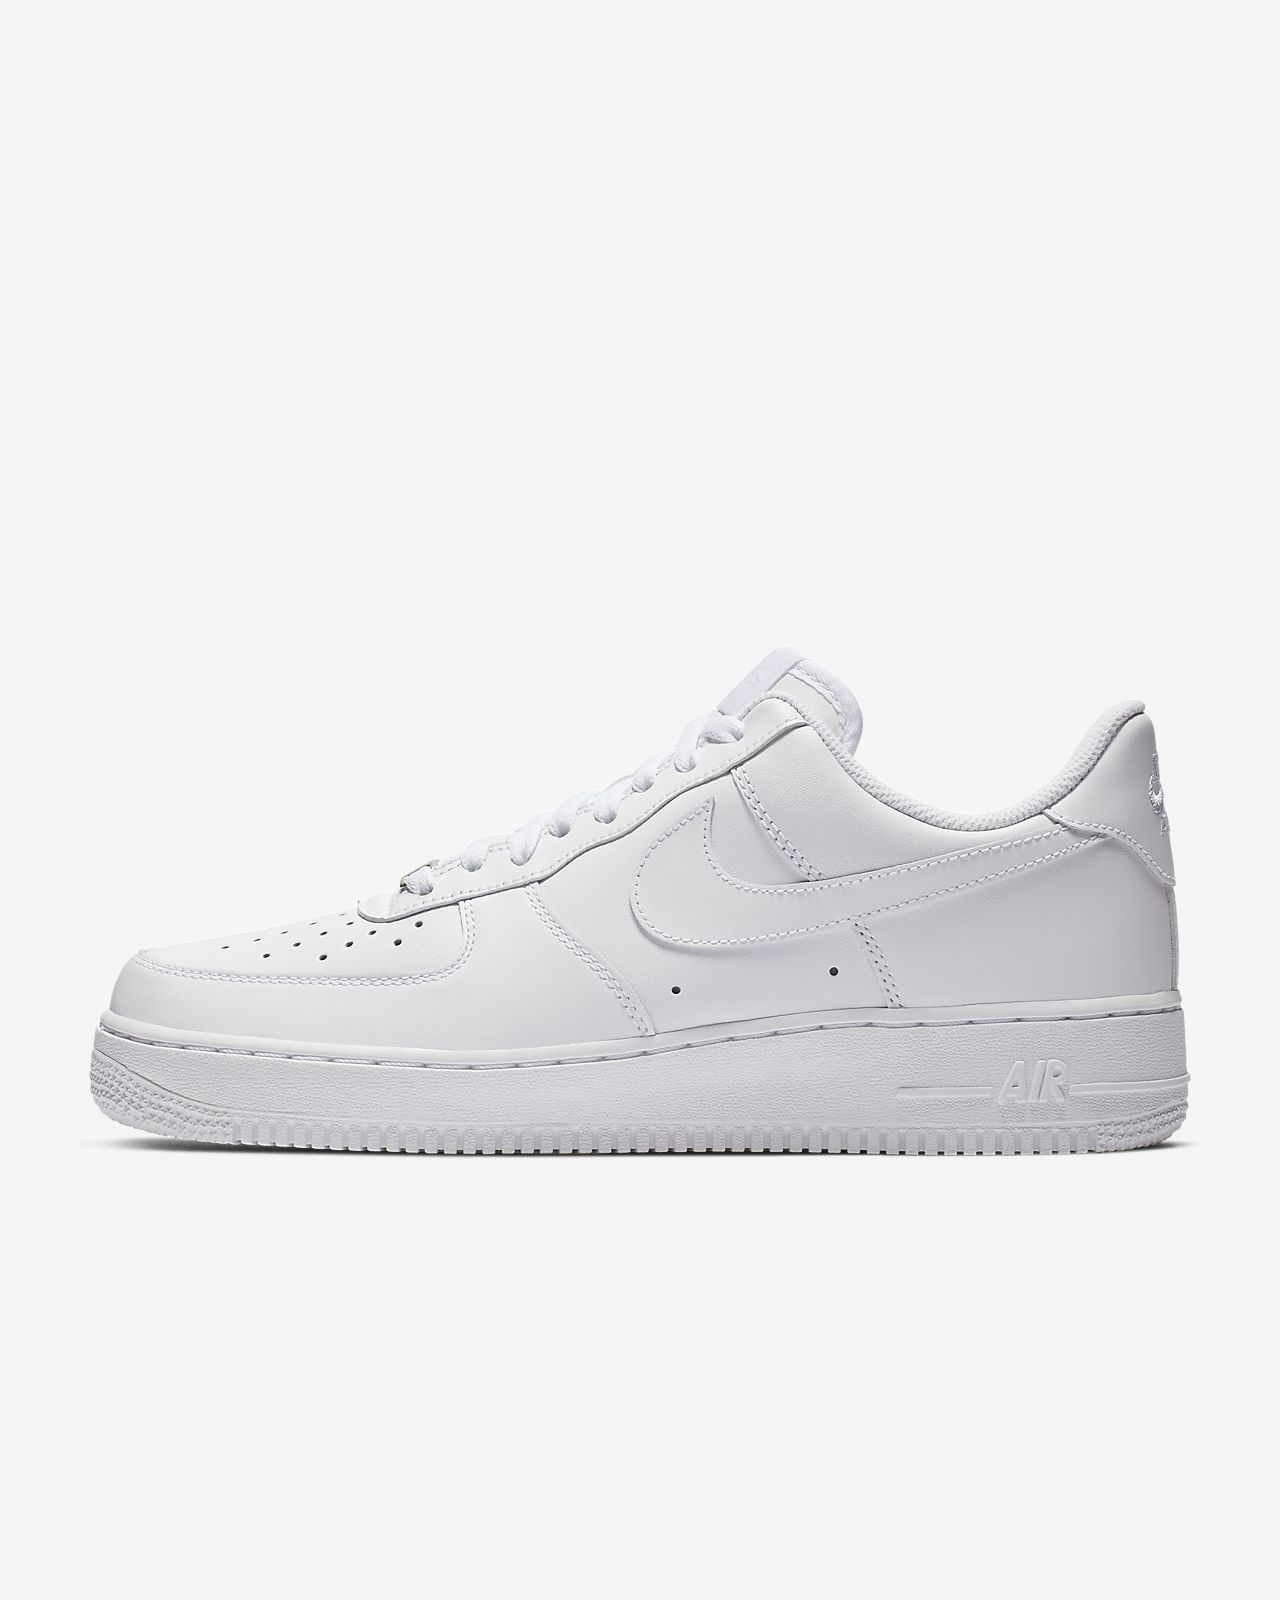 low priced d9e81 63a91 Nike Air Force 1 '07 Women's Shoe. Nike.com AU